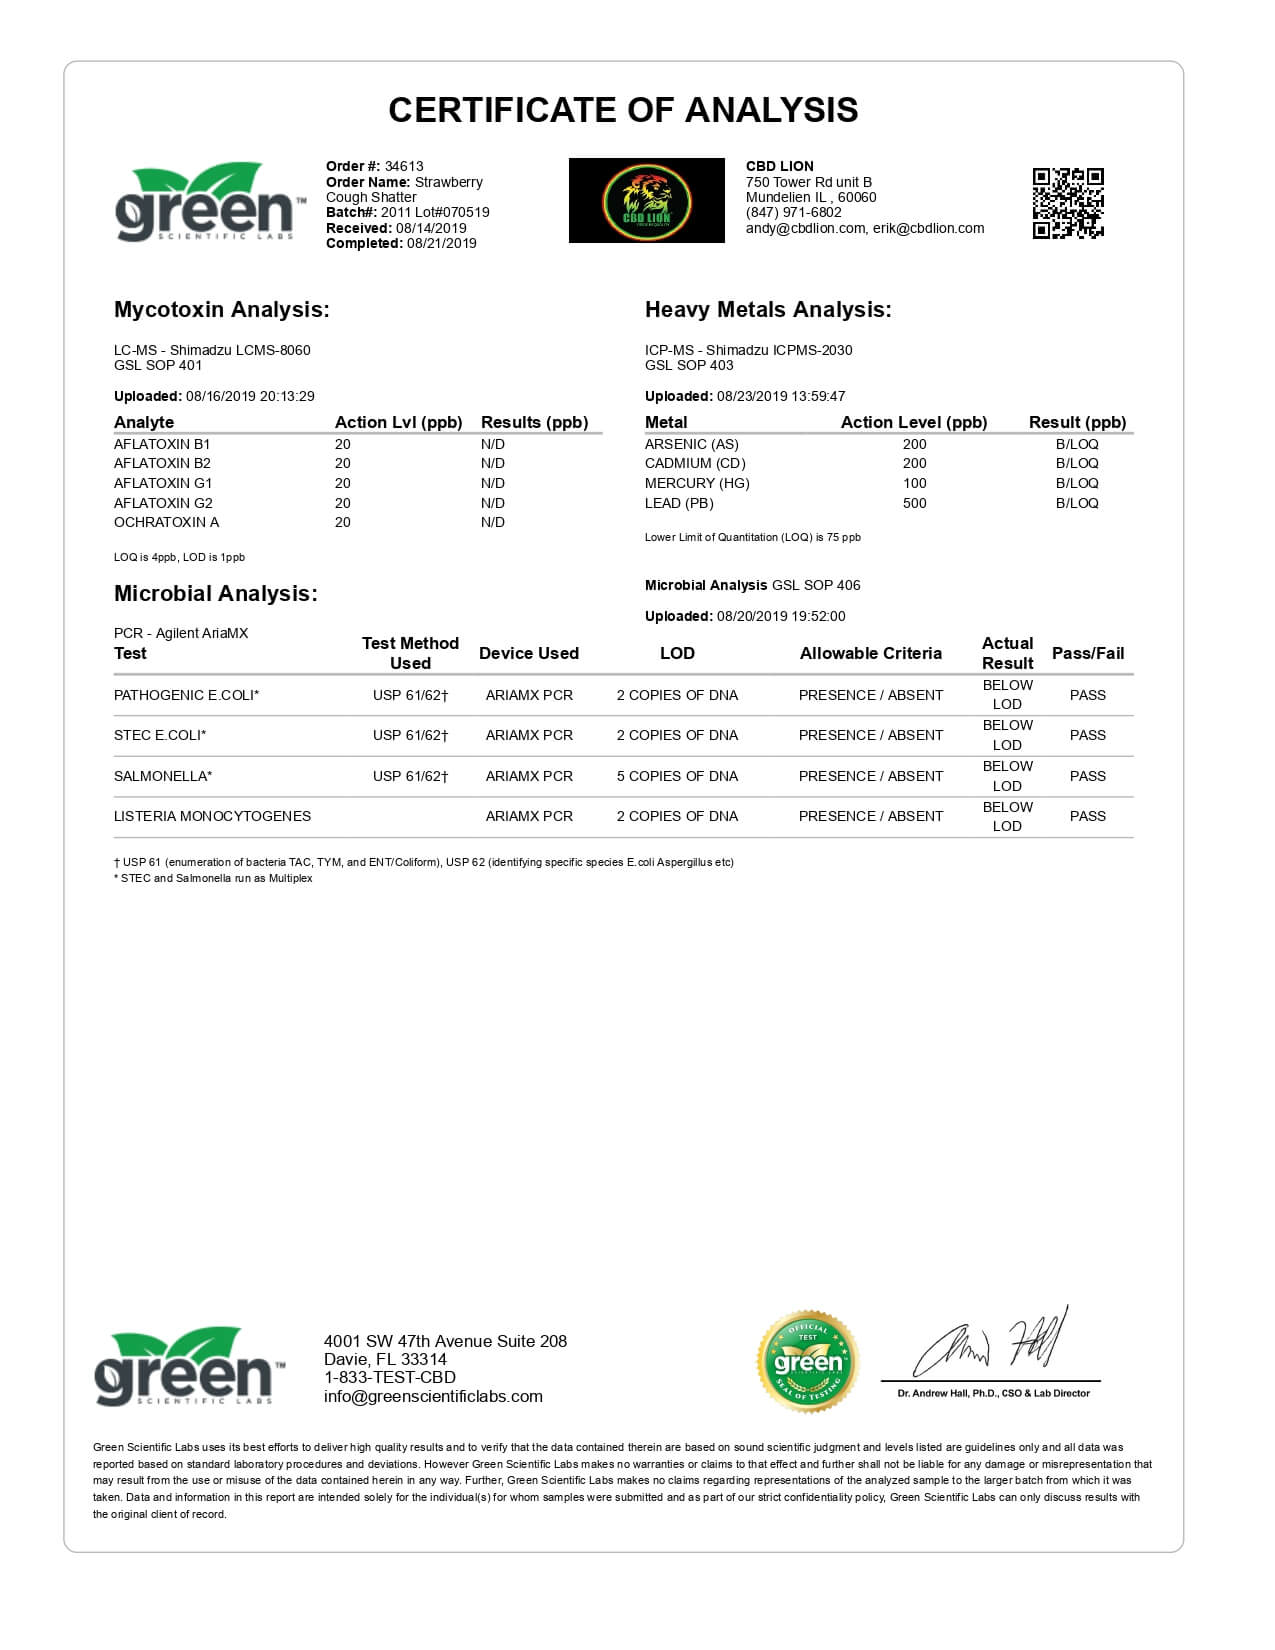 CBD Lion CBD Concentrate Strawberry Cough Shatter 1g Lab Report